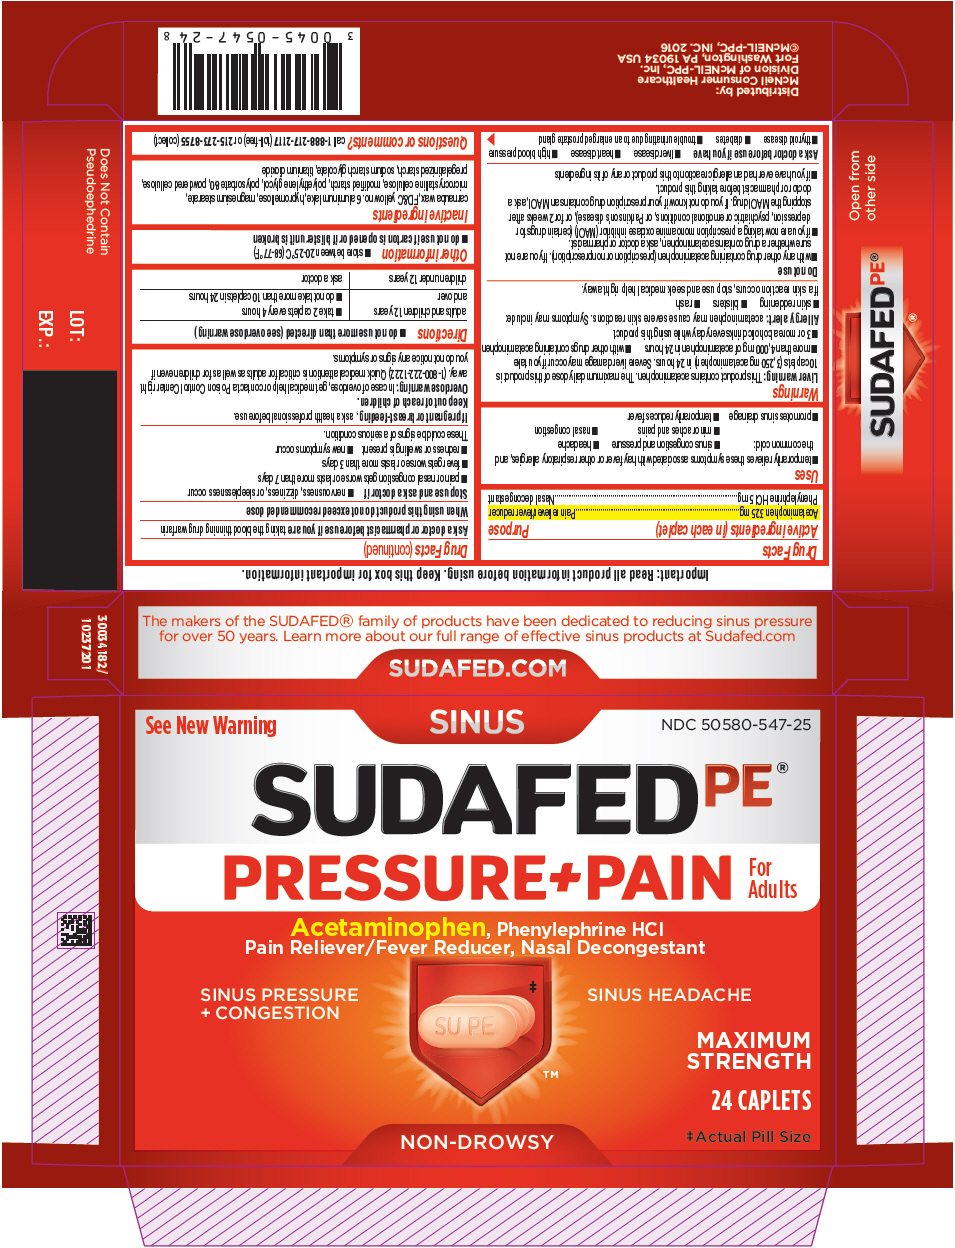 Sudafed Pe Pressure Plus Pain (Acetaminophen And Phenylephrine Hydrochloride) Tablet, Film Coated [Mcneil Consumer Healthcare Div. Mcneil-ppc, Inc]